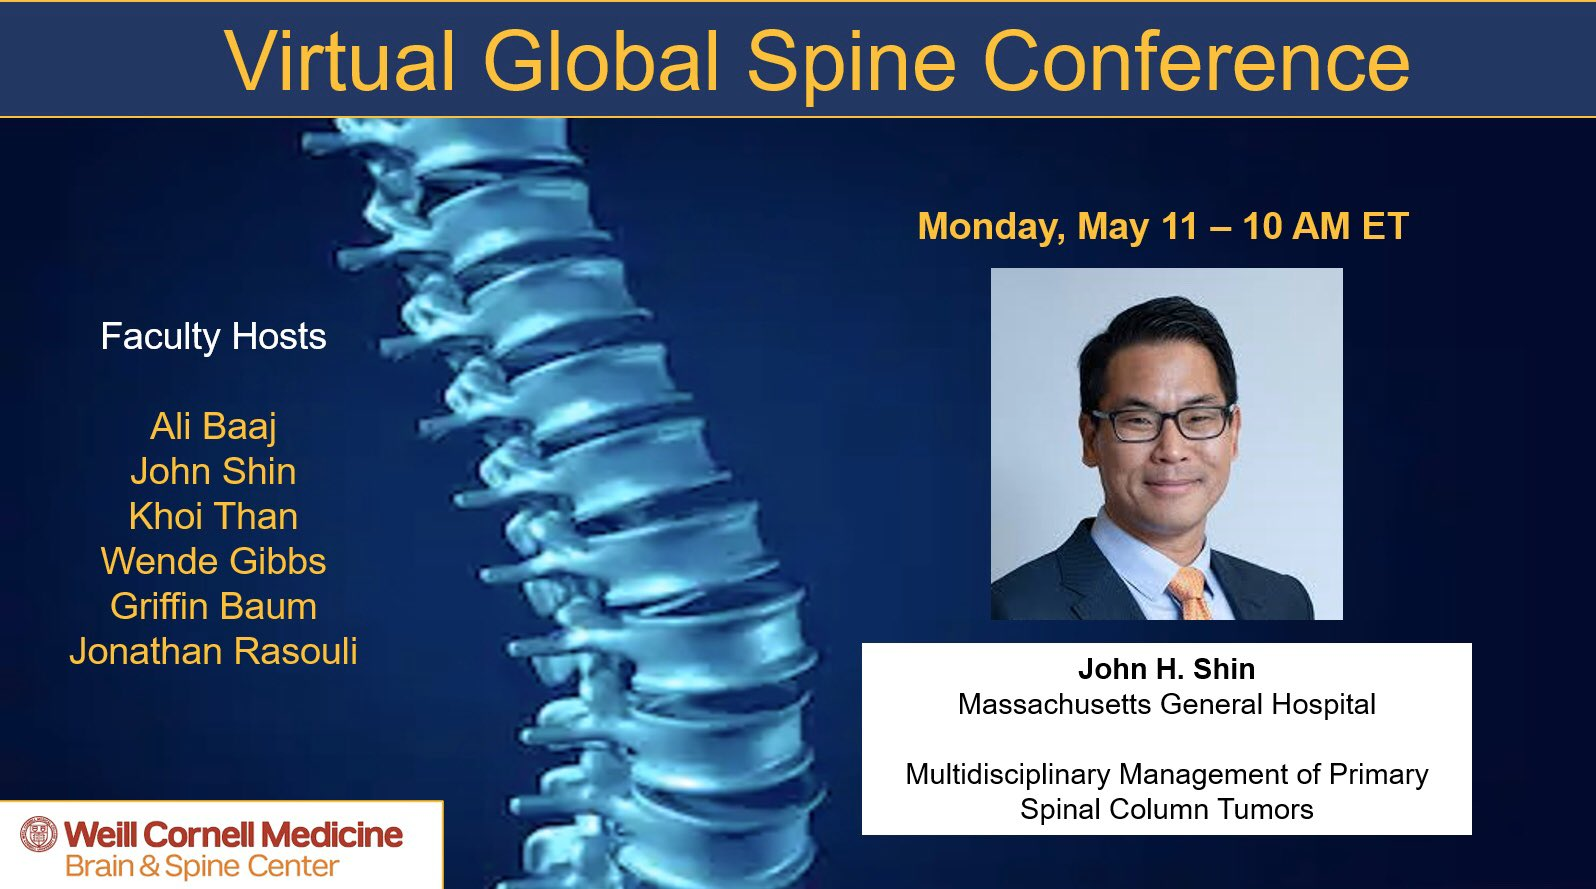 virtual global spine conference